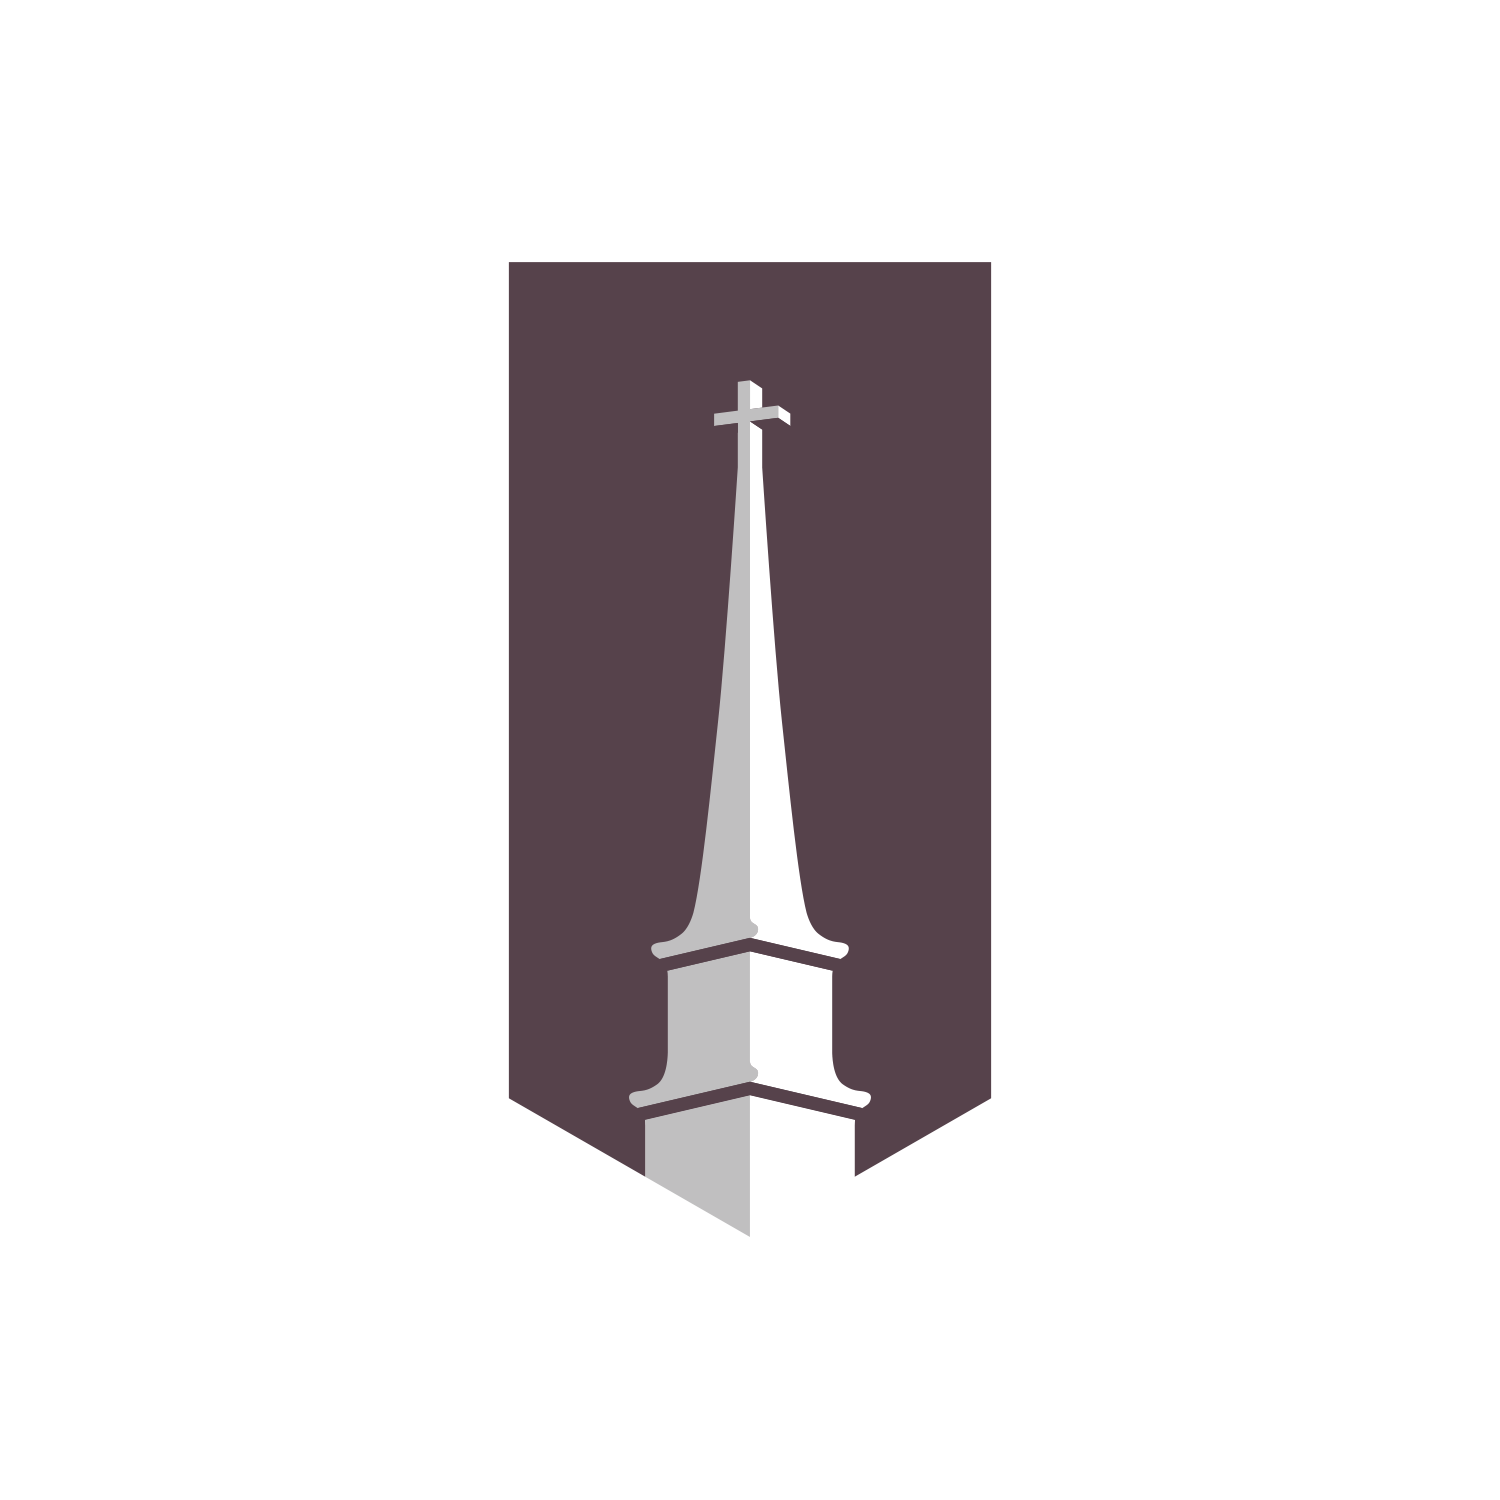 Bethel Baptist Church - Steeple Logo Design - Greeley, CO Church